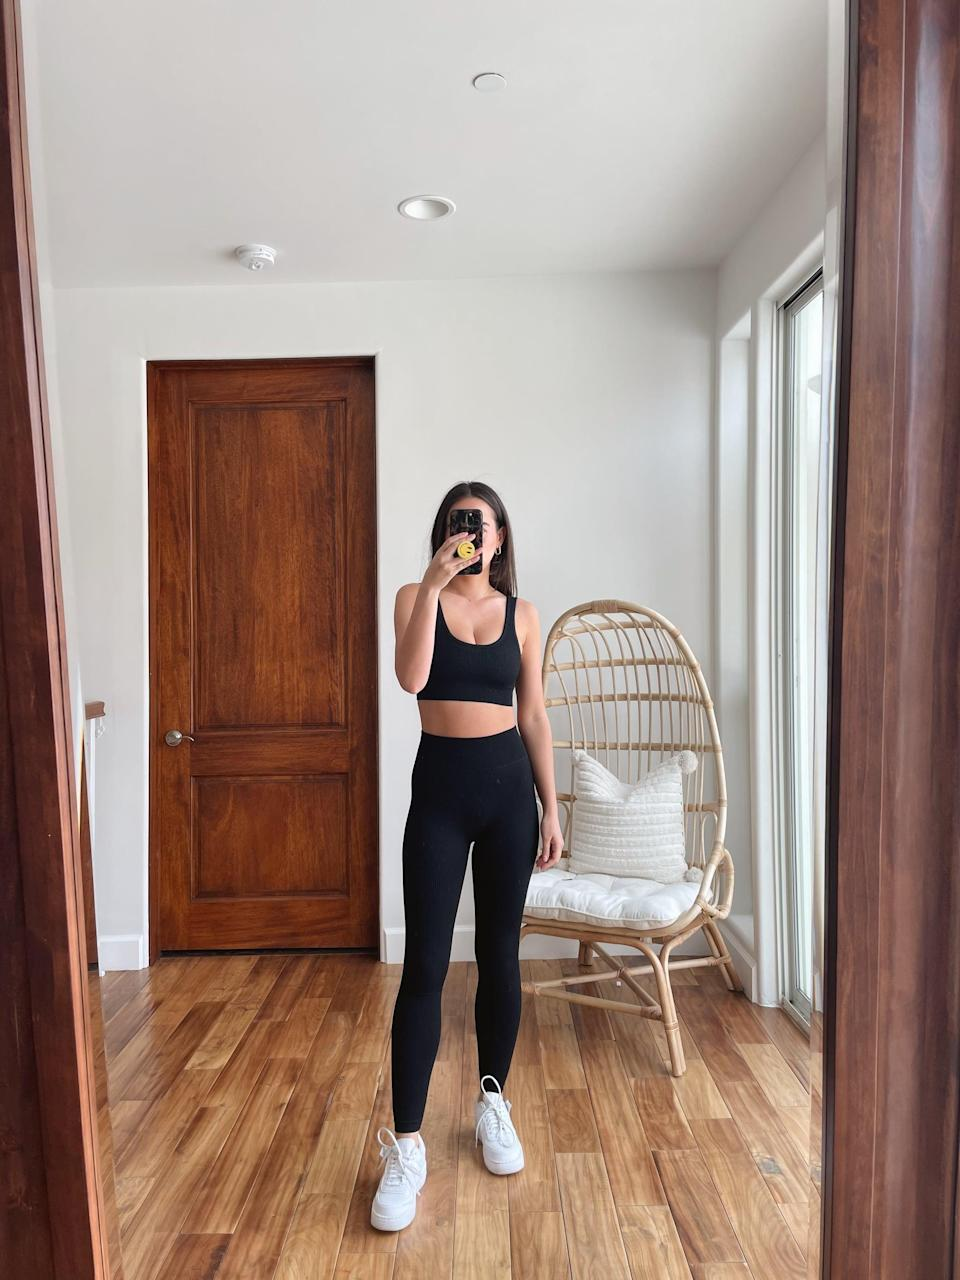 <p>I was so excited when I first tried on this black <span>Beaufident Women's Workout Set</span> ($27), because I realized it's an exact dupe for a workout set I have that cost me over $200. This set is just as amazing, and it's much more affordable. </p>